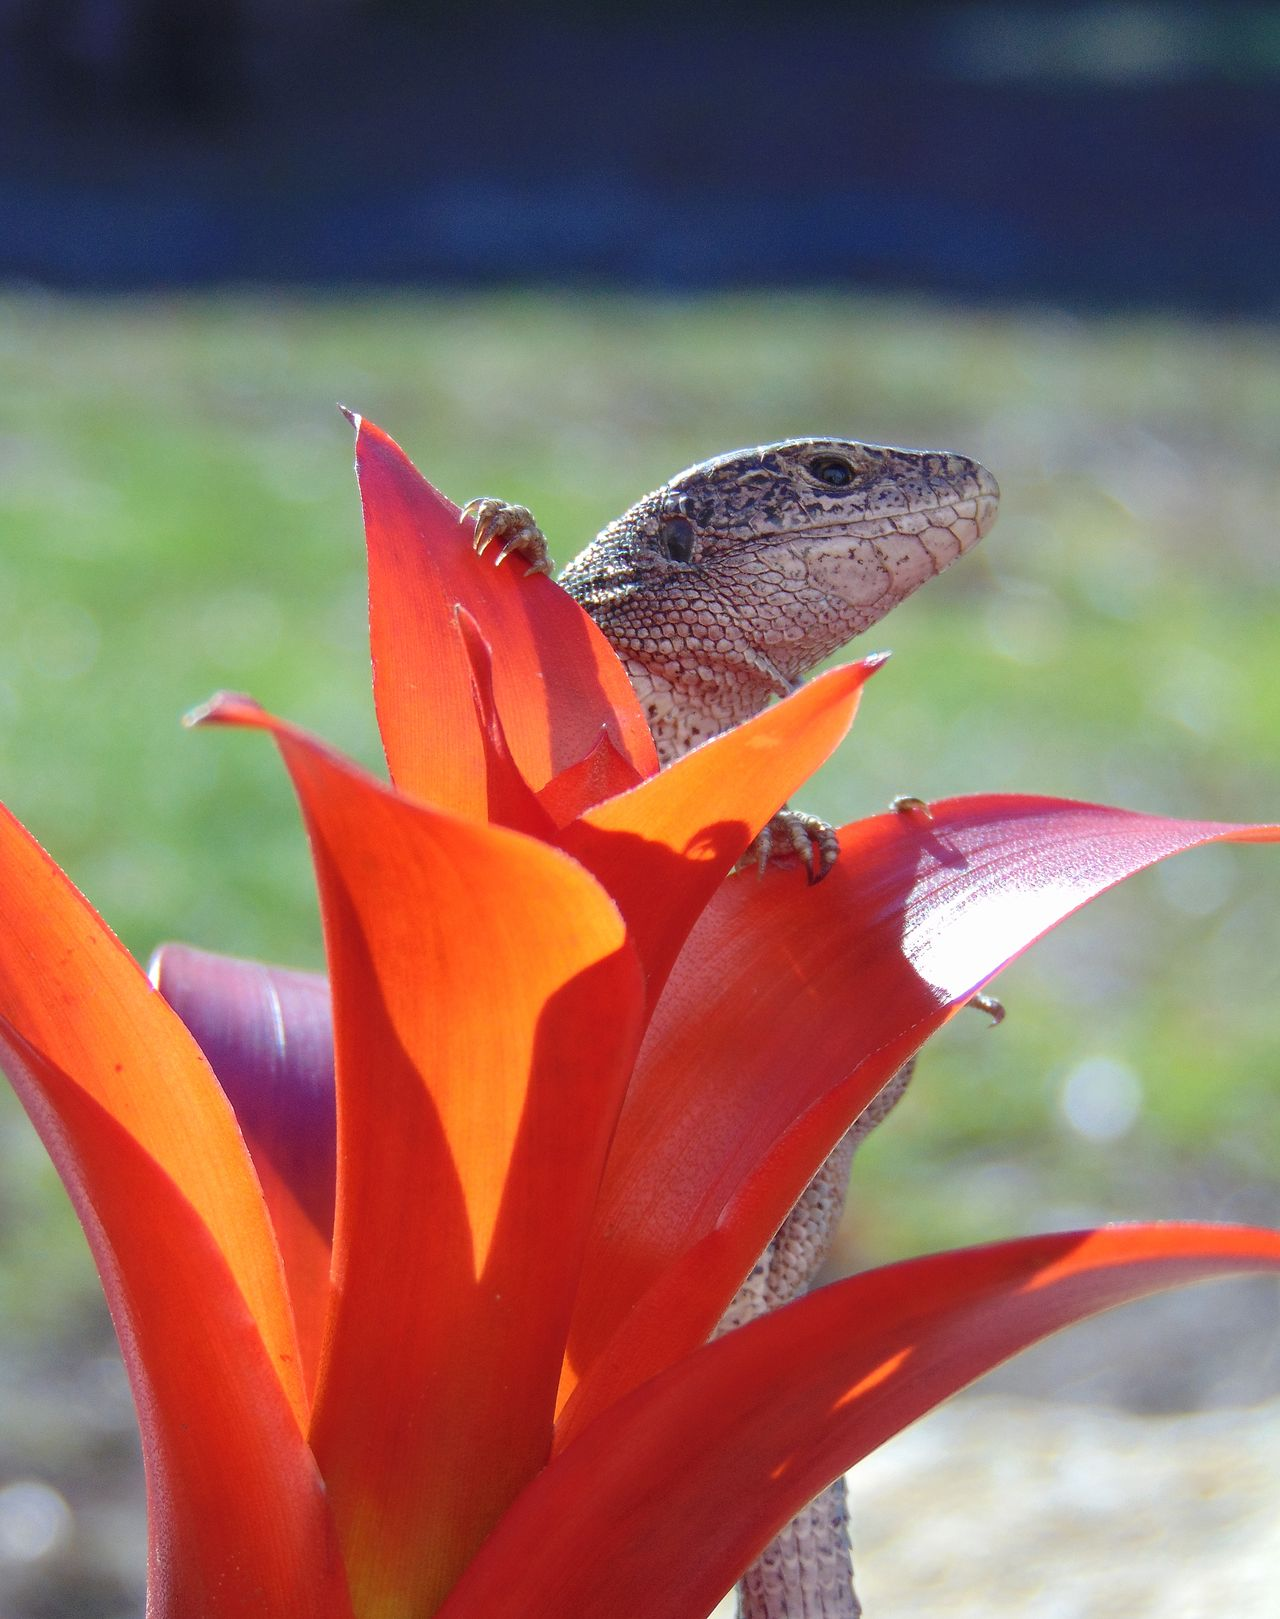 Animal Animal Eye Animal Photography Animal Themes Animals In The Wild Beauty In Nature Close-up Day EyeEm Nature Lover Hello World Lizard Natural Pattern Nature Nature Nature Photography Nature_collection No People Outdoors Plant Red Color Relaxing Reptilian Sunbathing Zoology